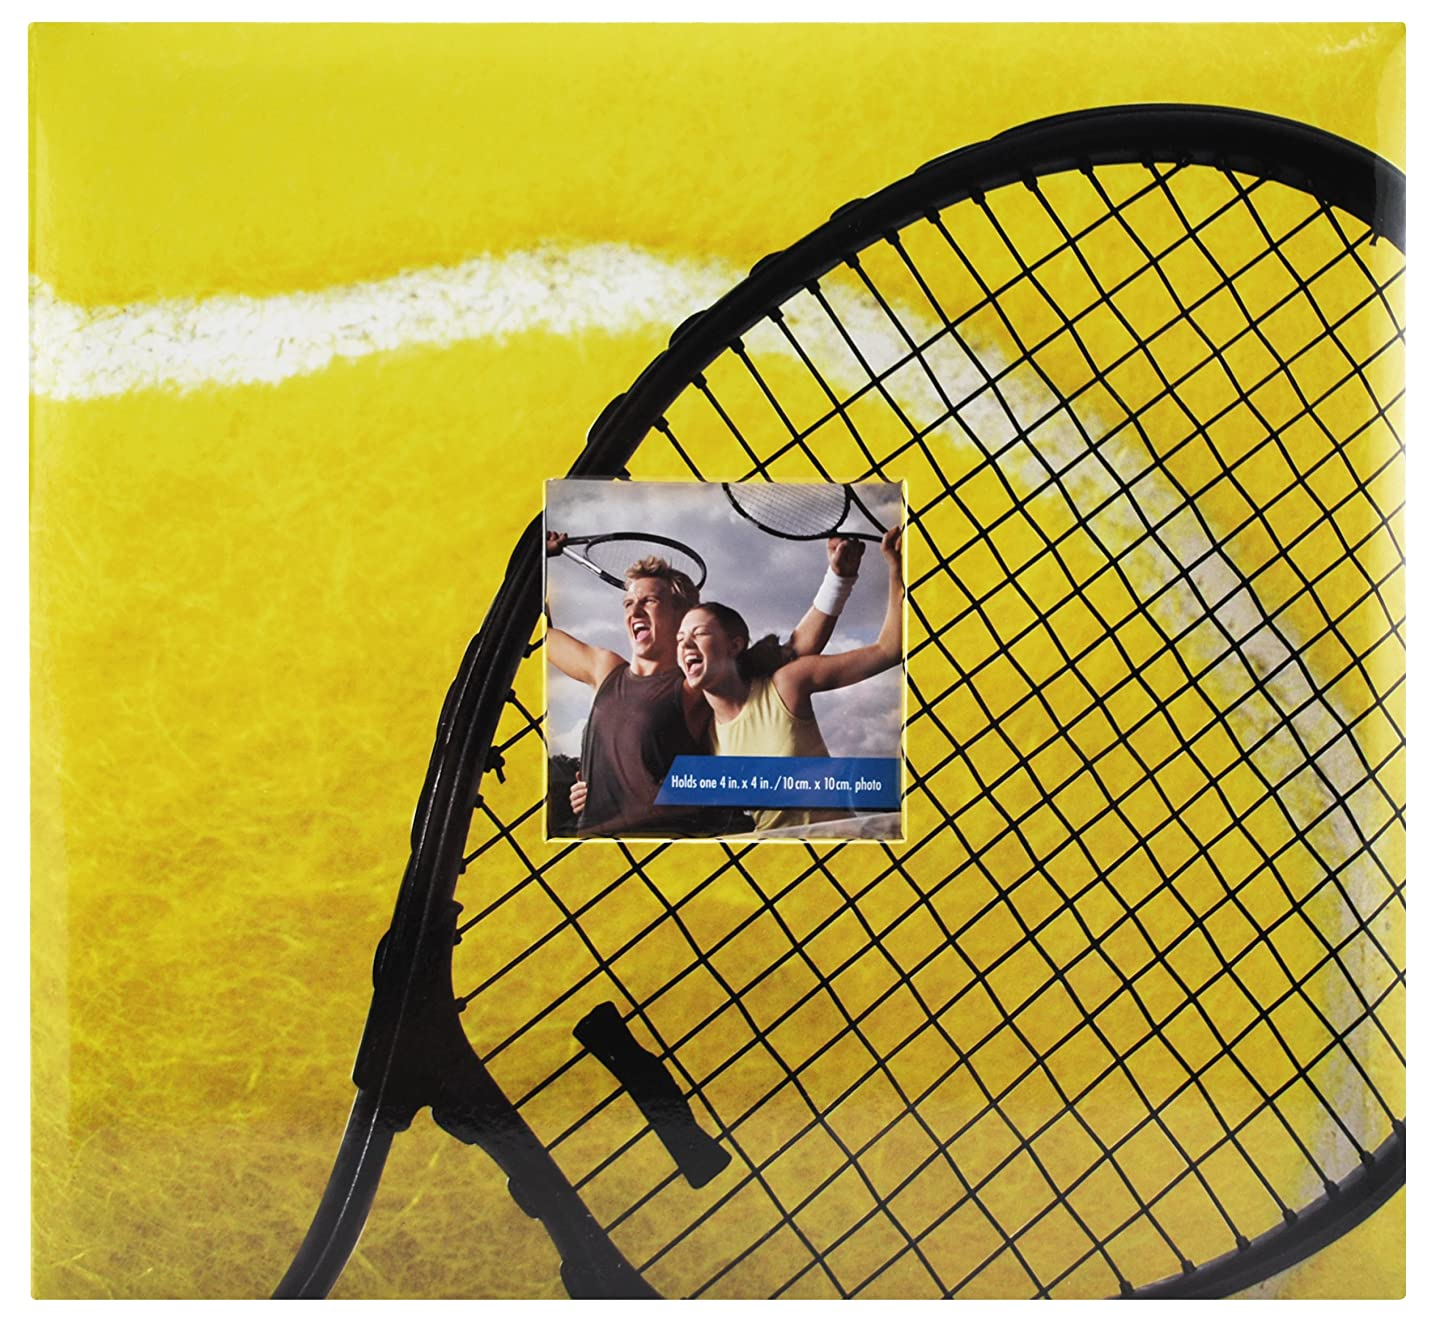 MCS MBI 13.5x12.5 Inch Tennis Theme Scrapbook Album with 12x12 Inch Pages with Photo Opening (865412)